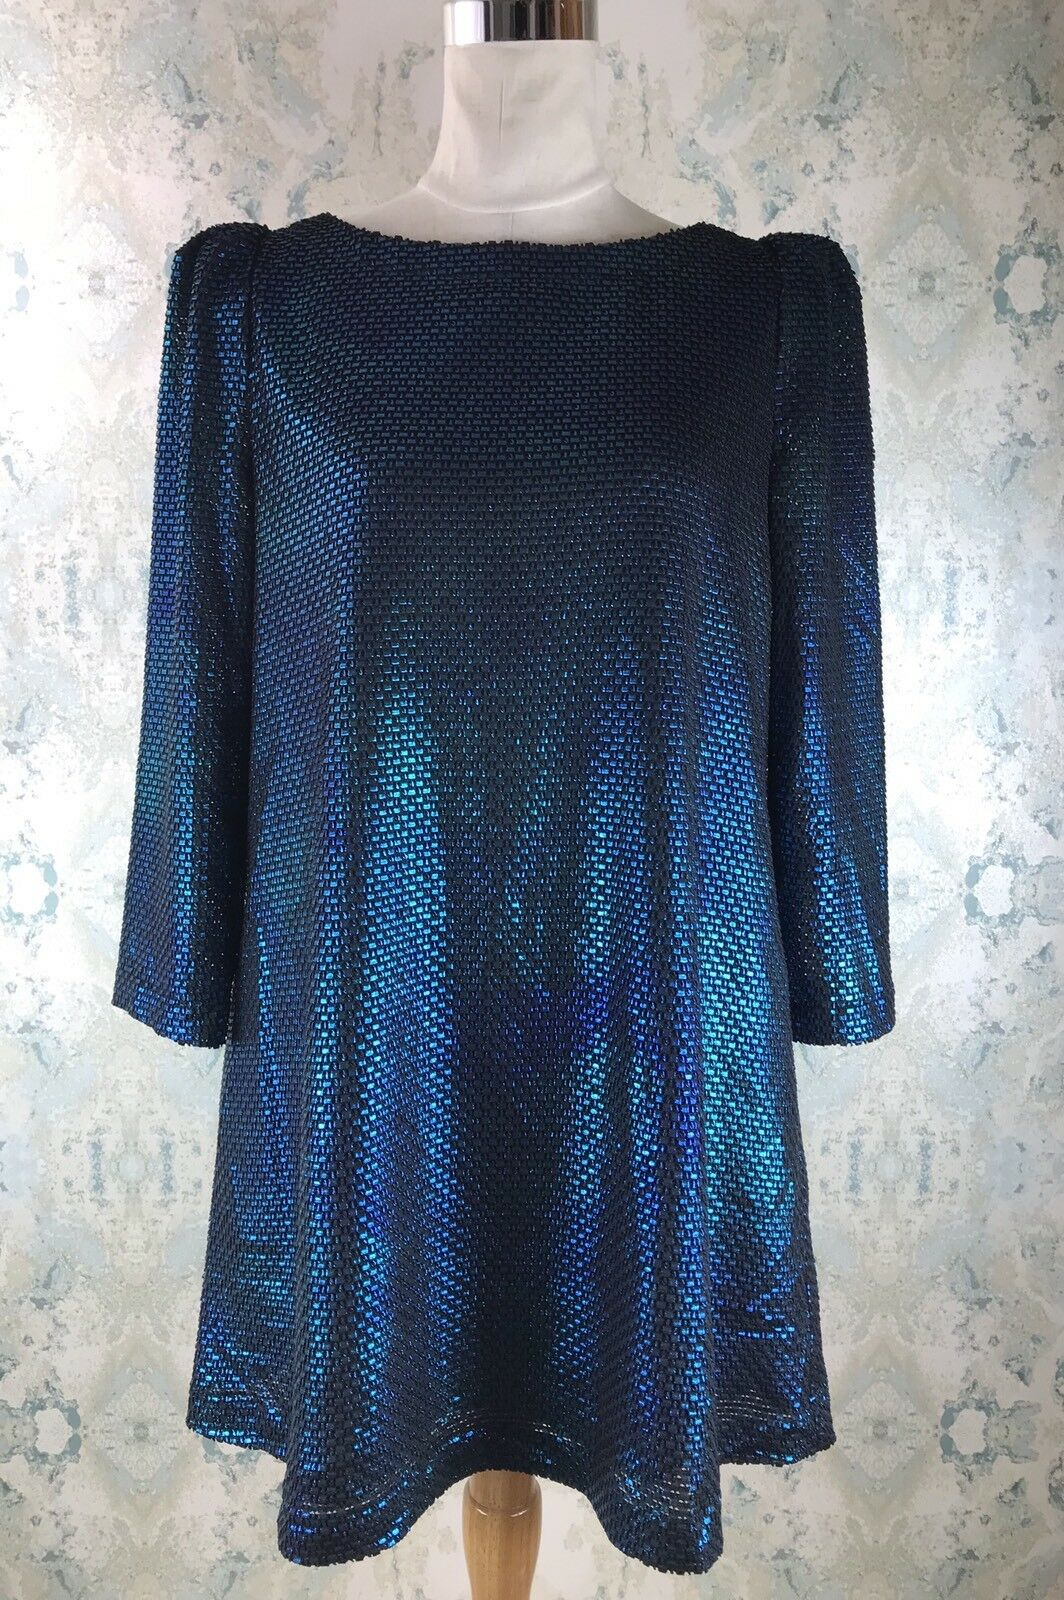 aa3ef0e3ab6 Free People bluee Metallic Textured Long Sleeve Foil Mini Party Dress S